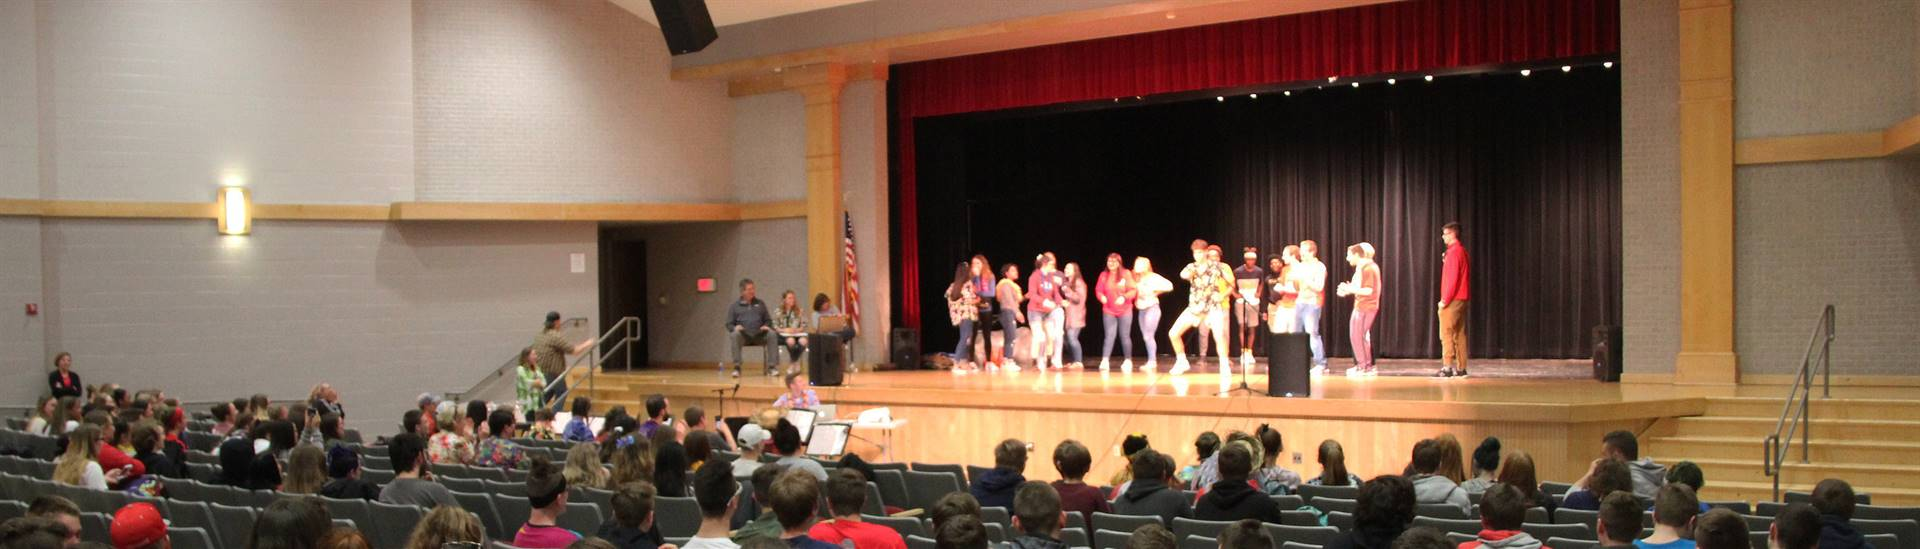 Chenango Valley High School Spring 2019 Pep Rally 1